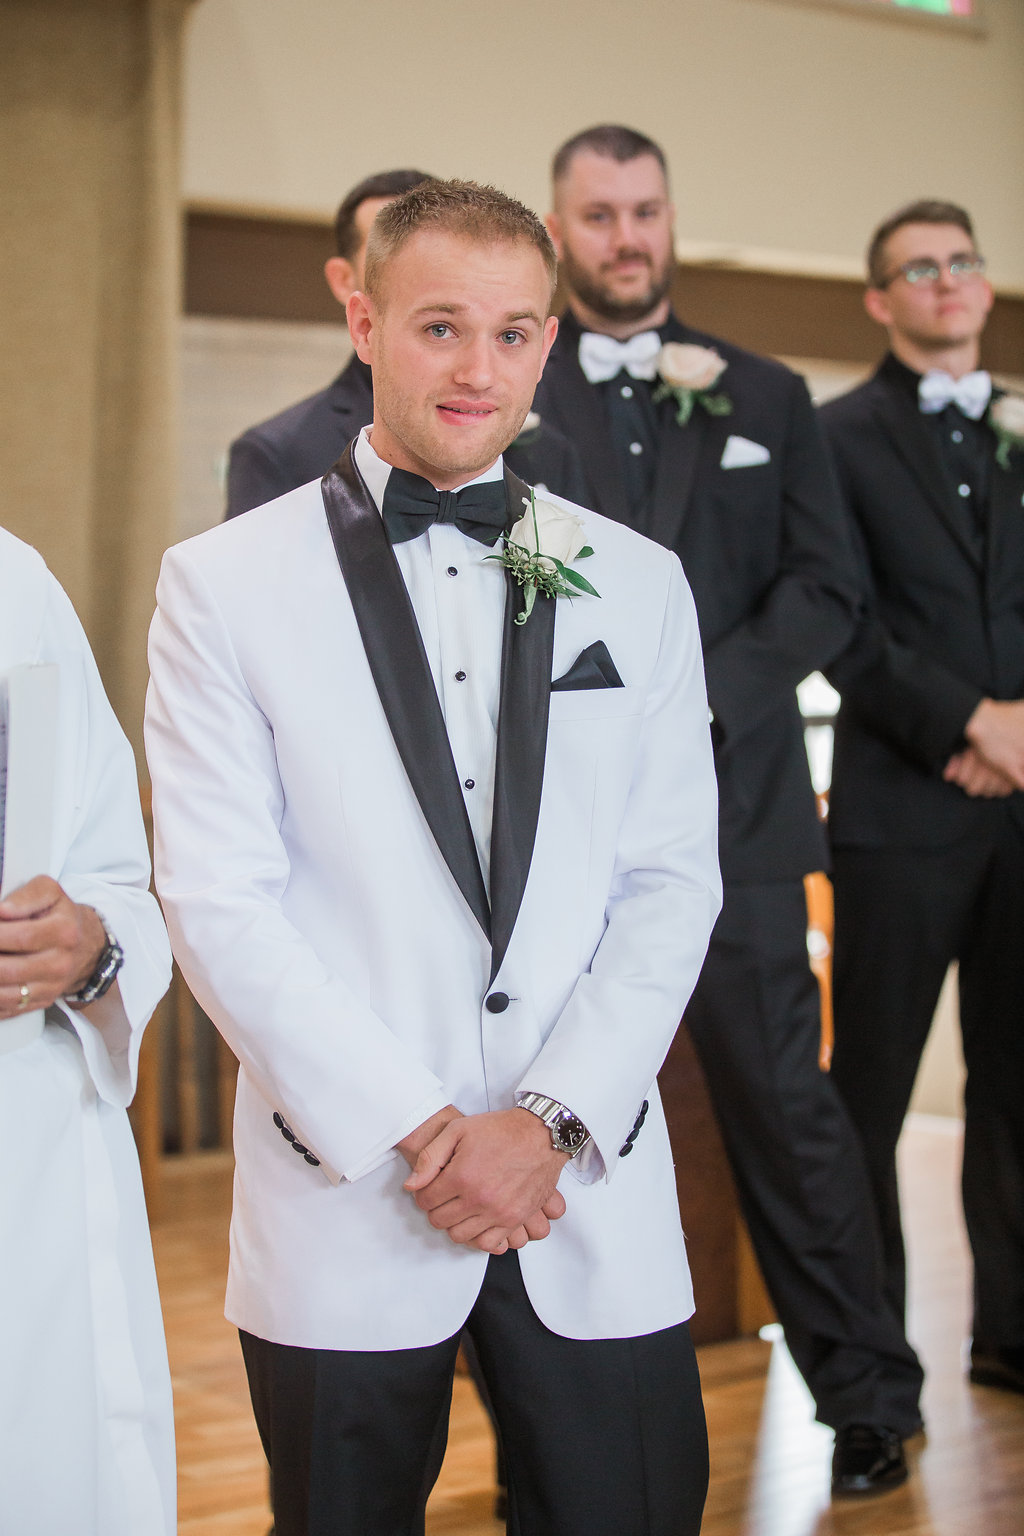 Groom seeing bride for first time during wedding ceremony